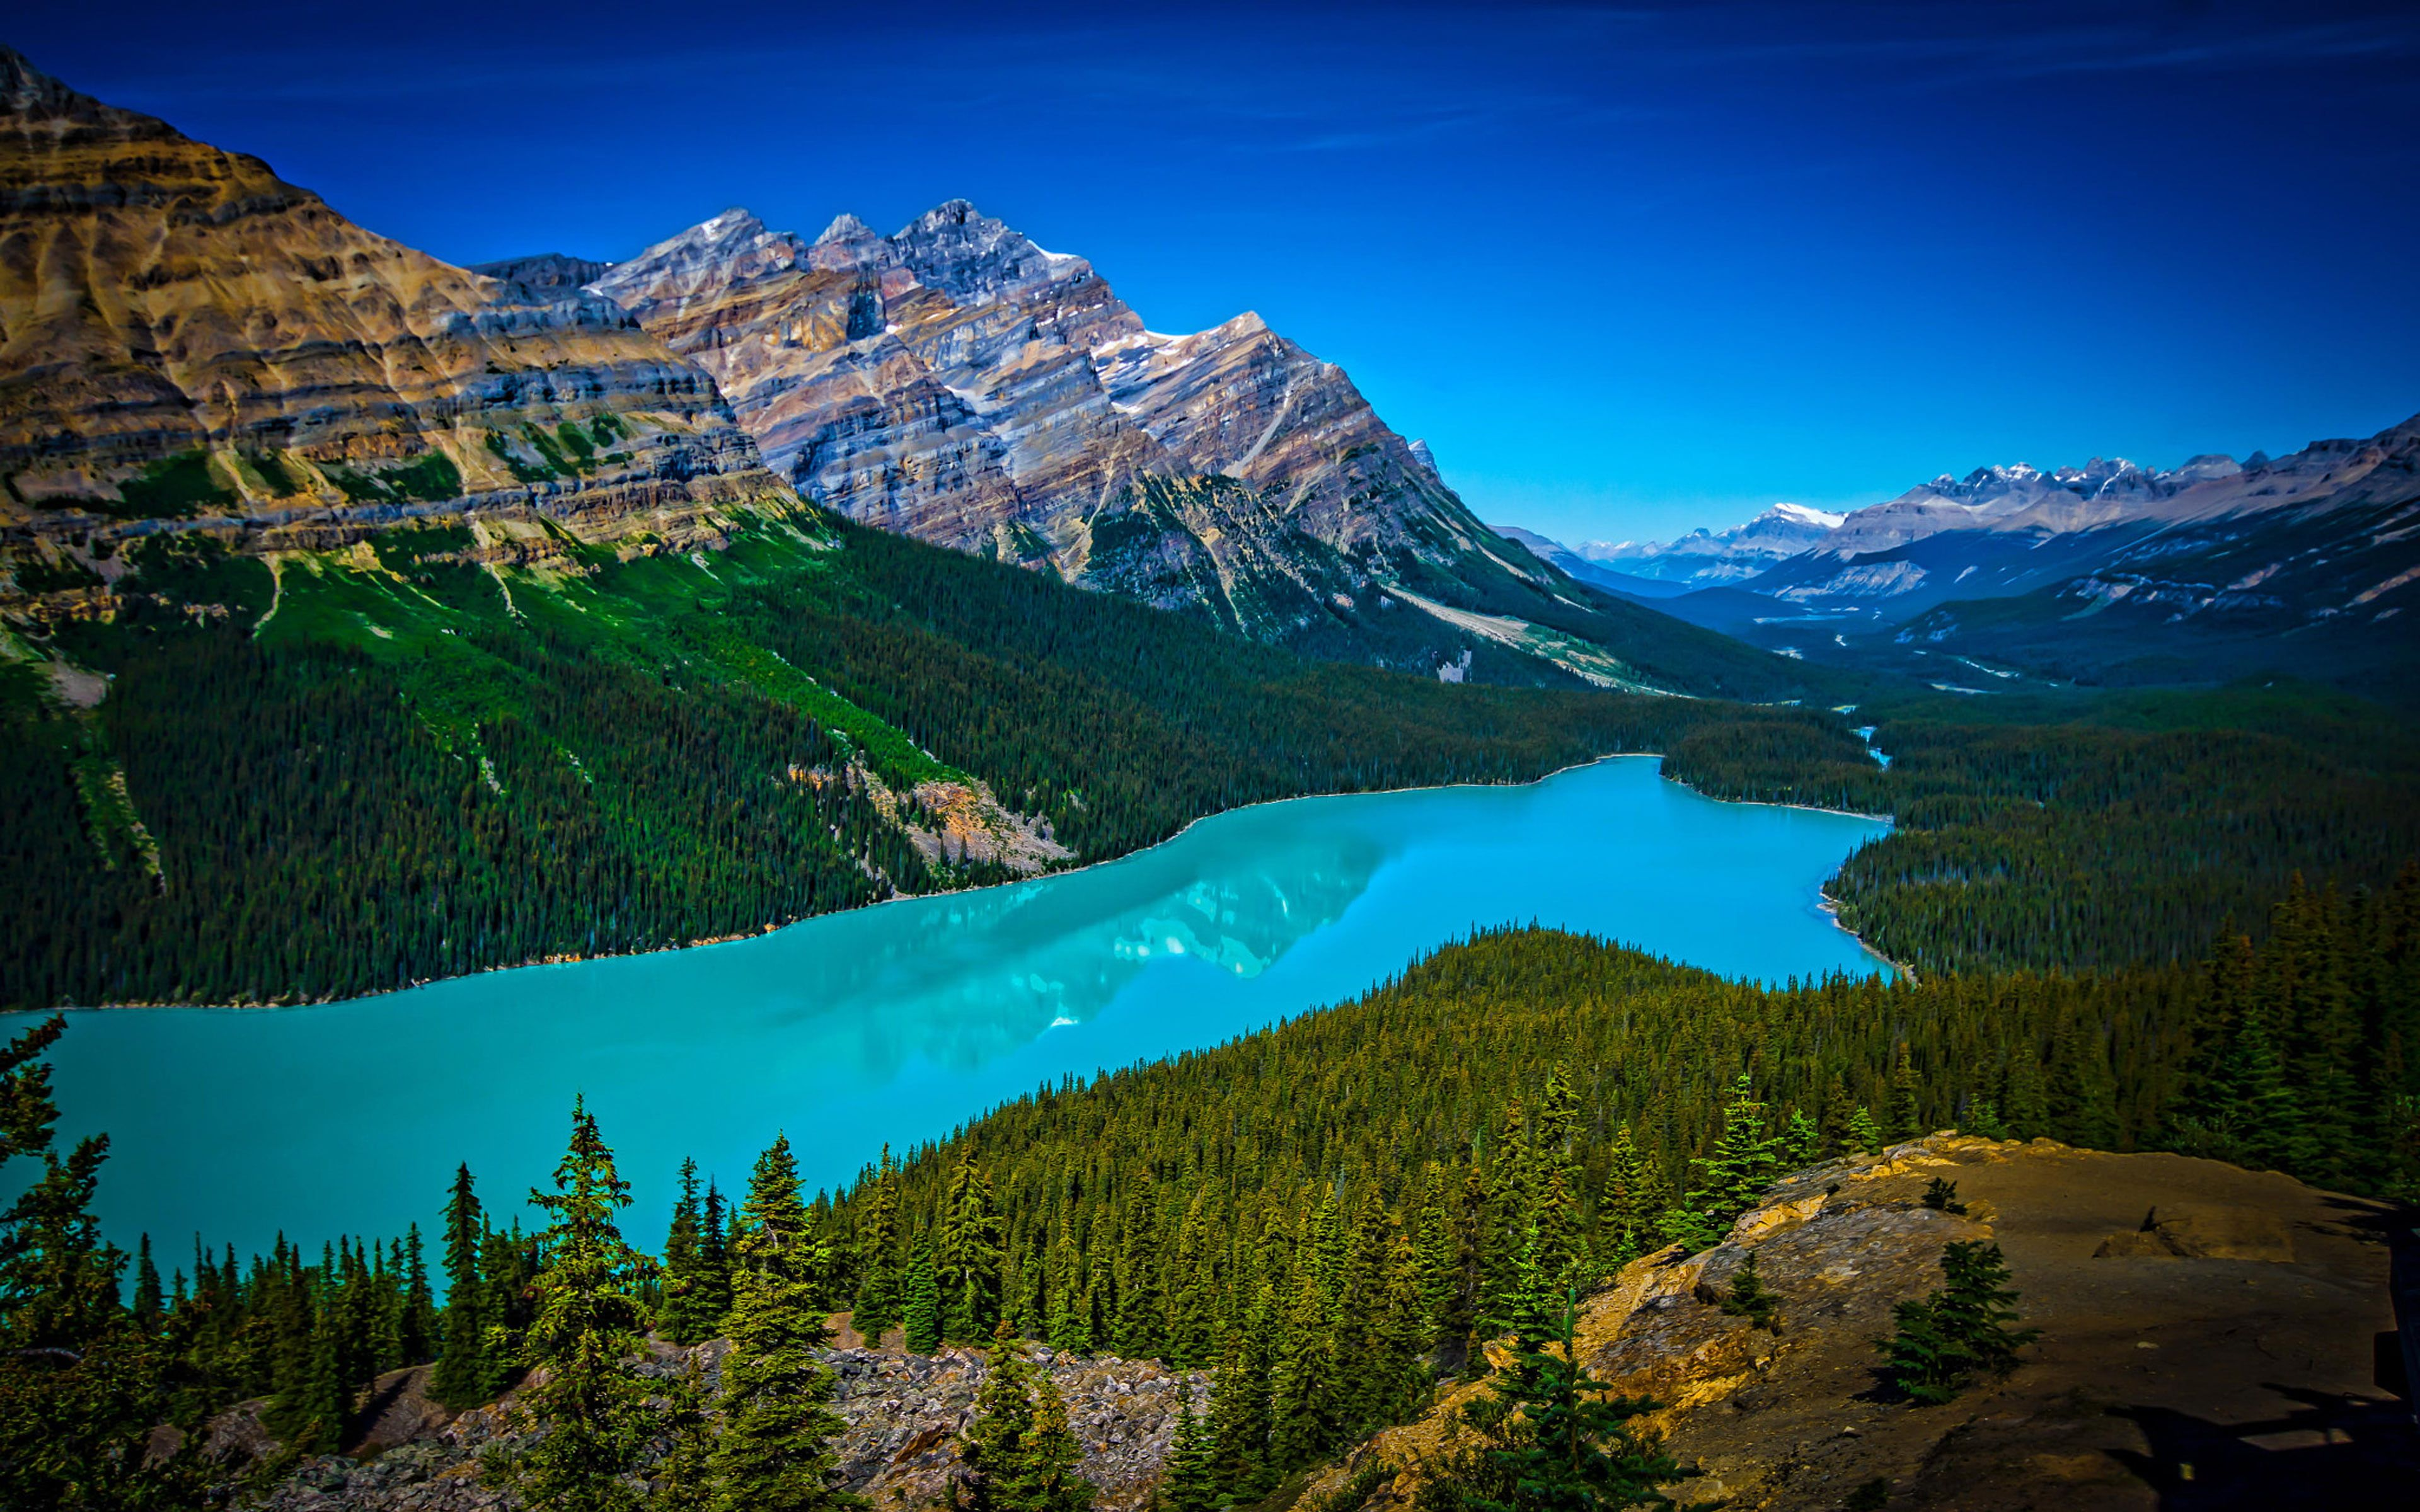 Turquoise Peyto Lake In Banff National Park In Canada At An Altitude Of 1860 M Length 2 8 Km Hd Tv Wallpaper For Deskto Banff National Park National Parks Lake